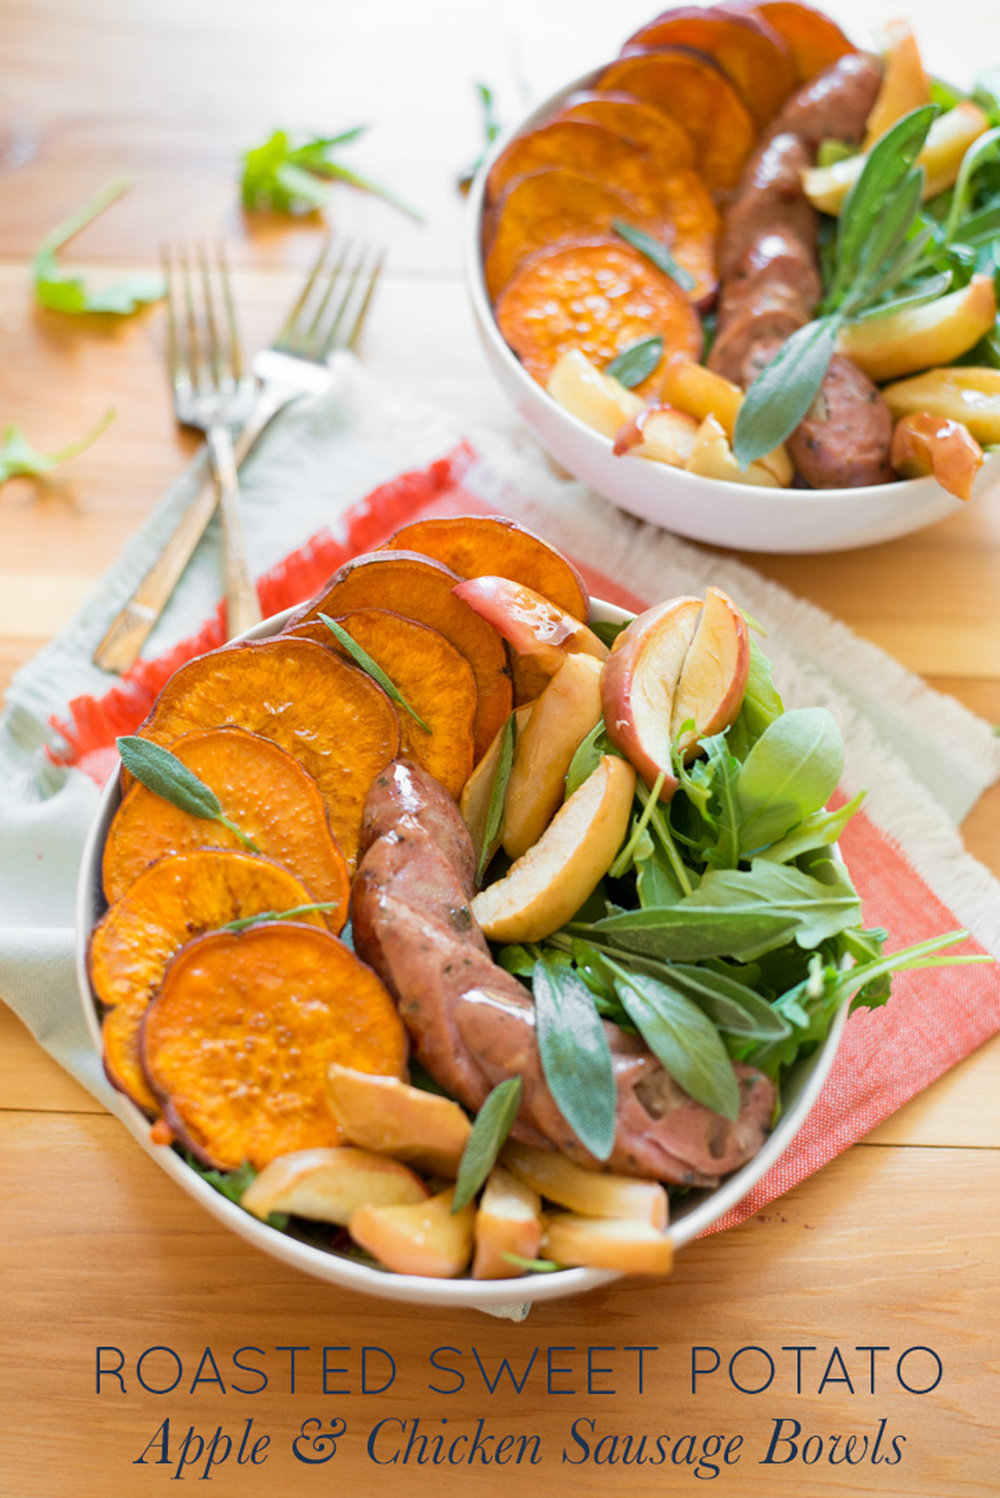 Simple To Prepare In Just Onepan, Roasted Sweet Potato, Apple And Chicken